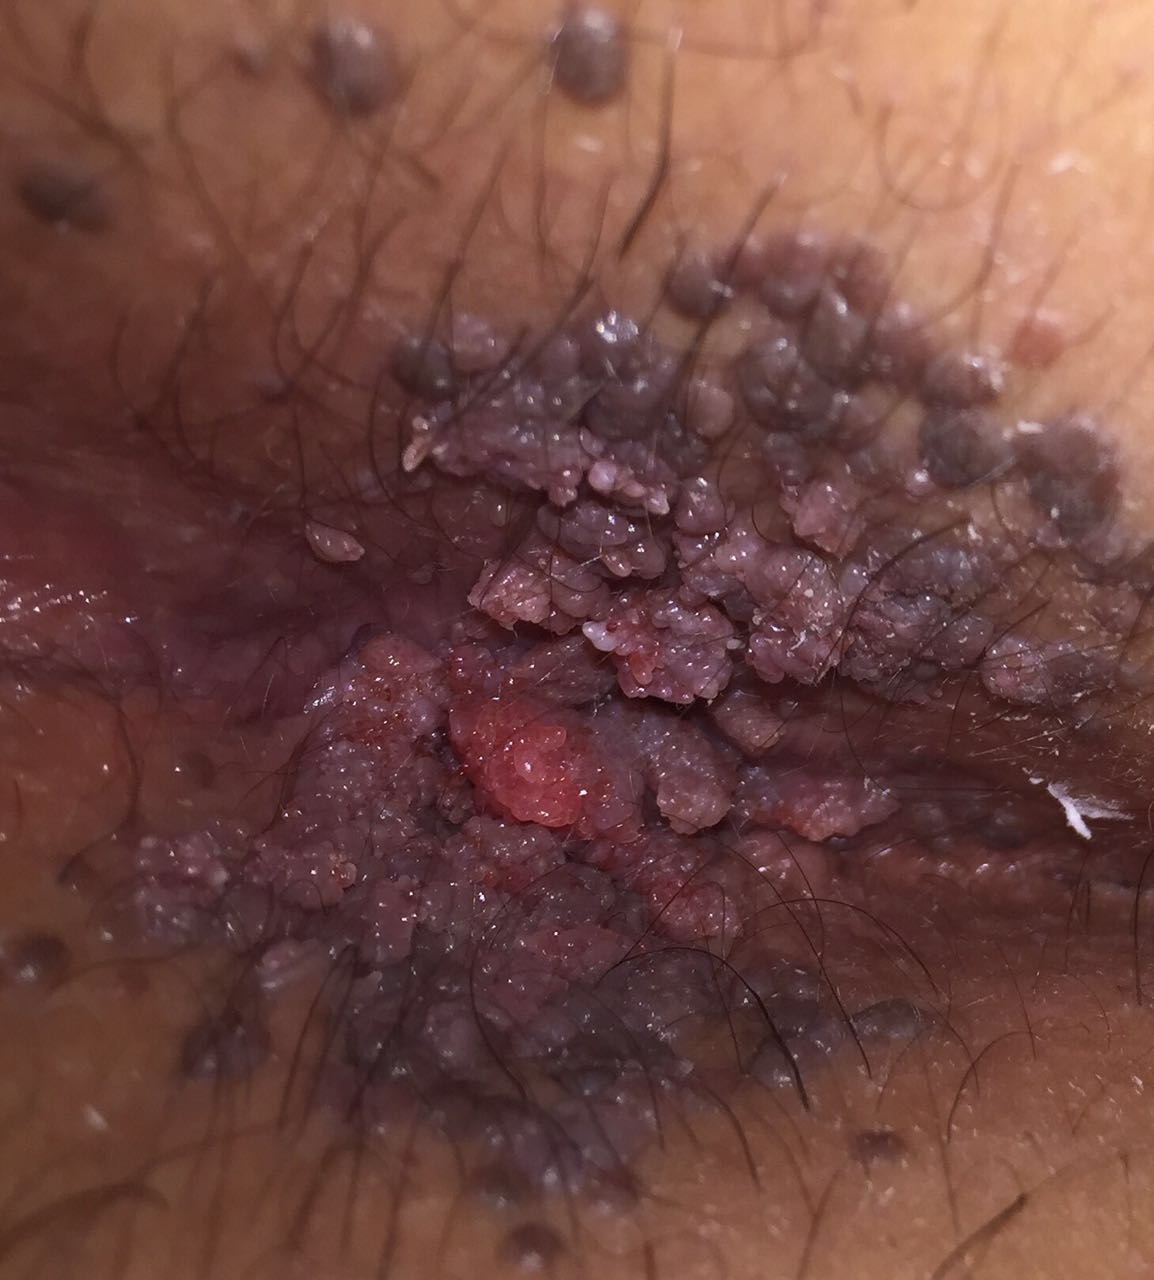 Medicine for anal warts